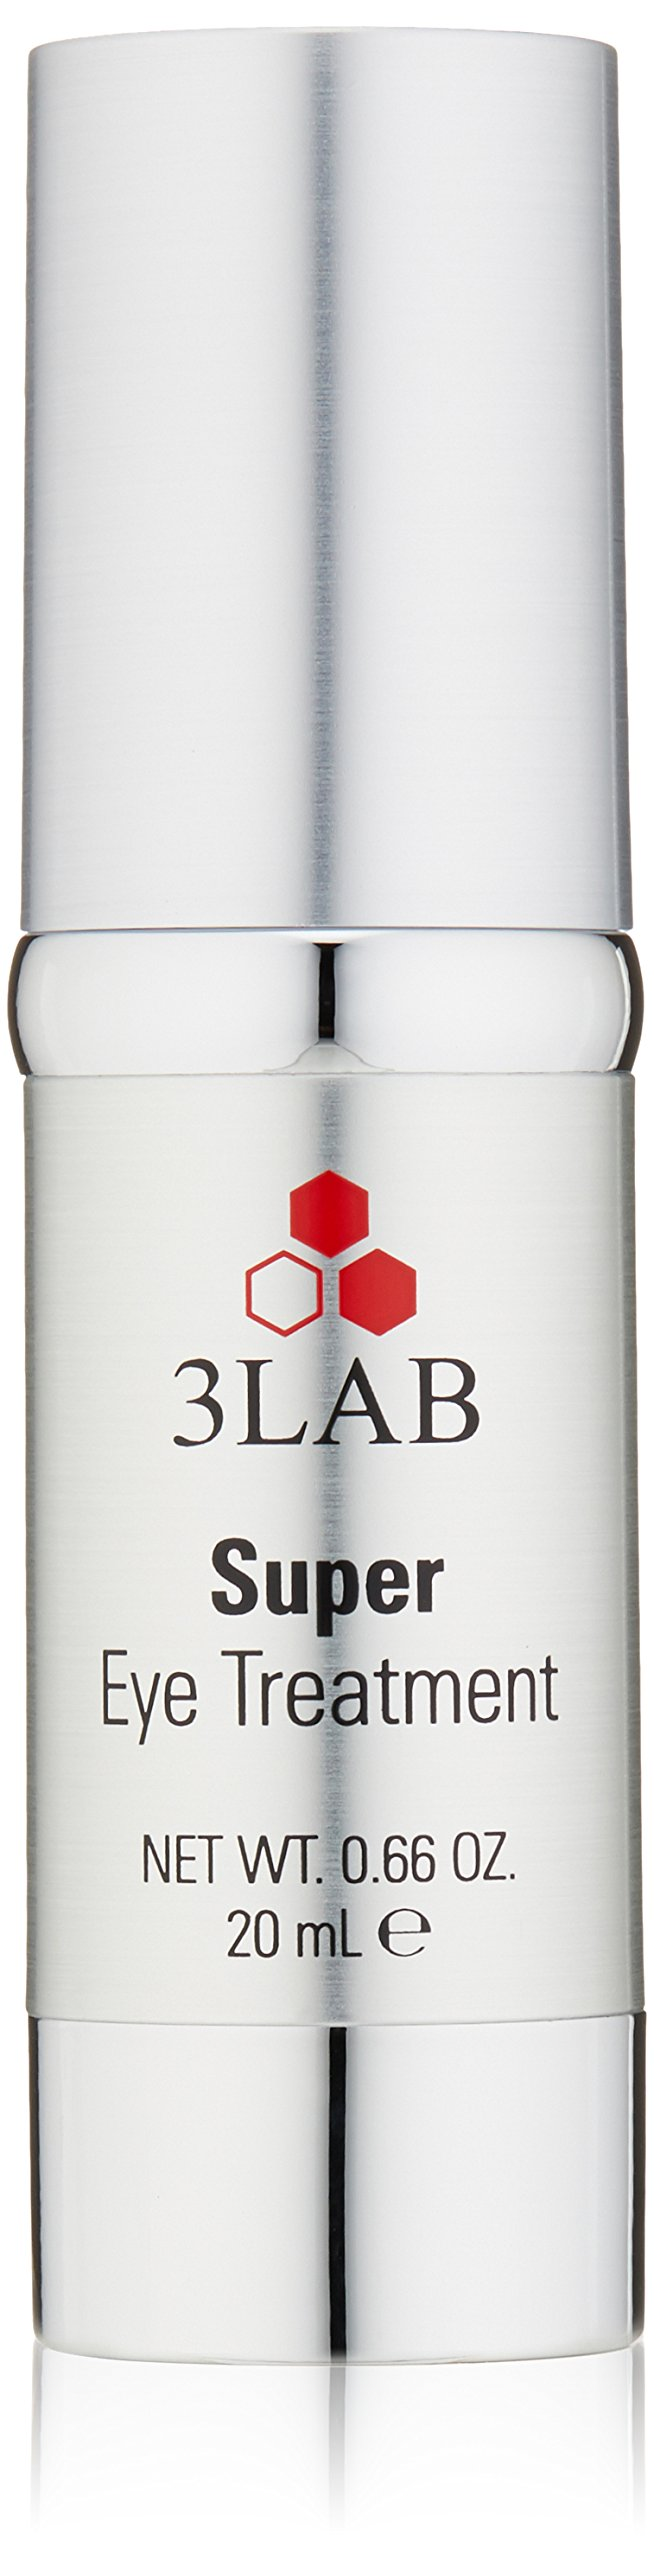 3LAB Super Eye Treatment, 0.66 Oz.